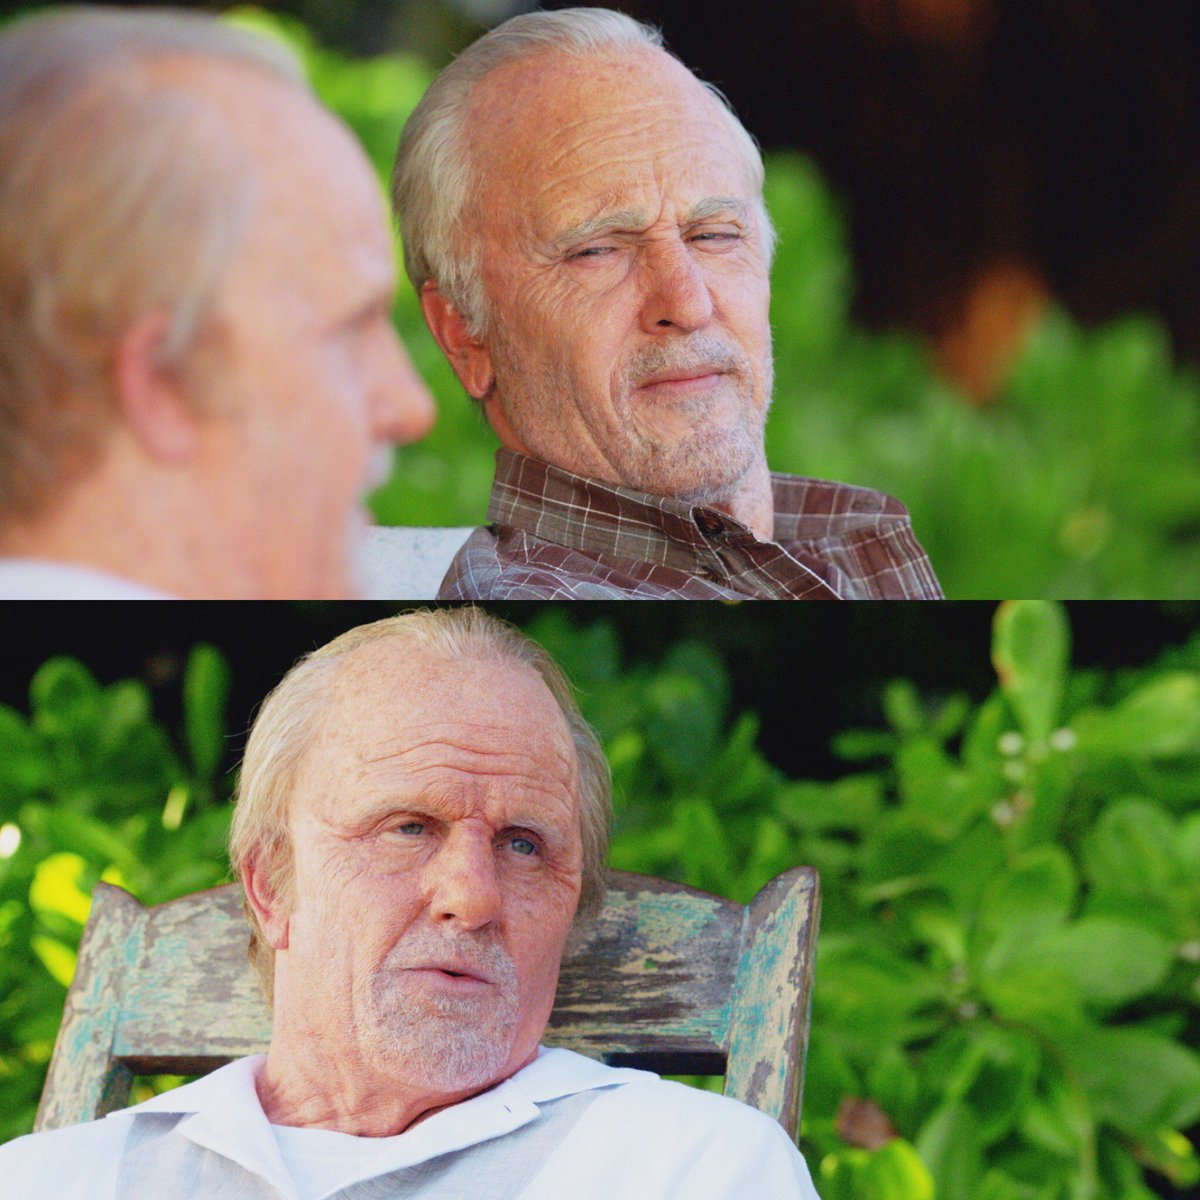 Everybodys posting older photos of themselves, and were just over here thinking We did it first! 👴🏻👴🏻 #H50 #OldAgeChallenge